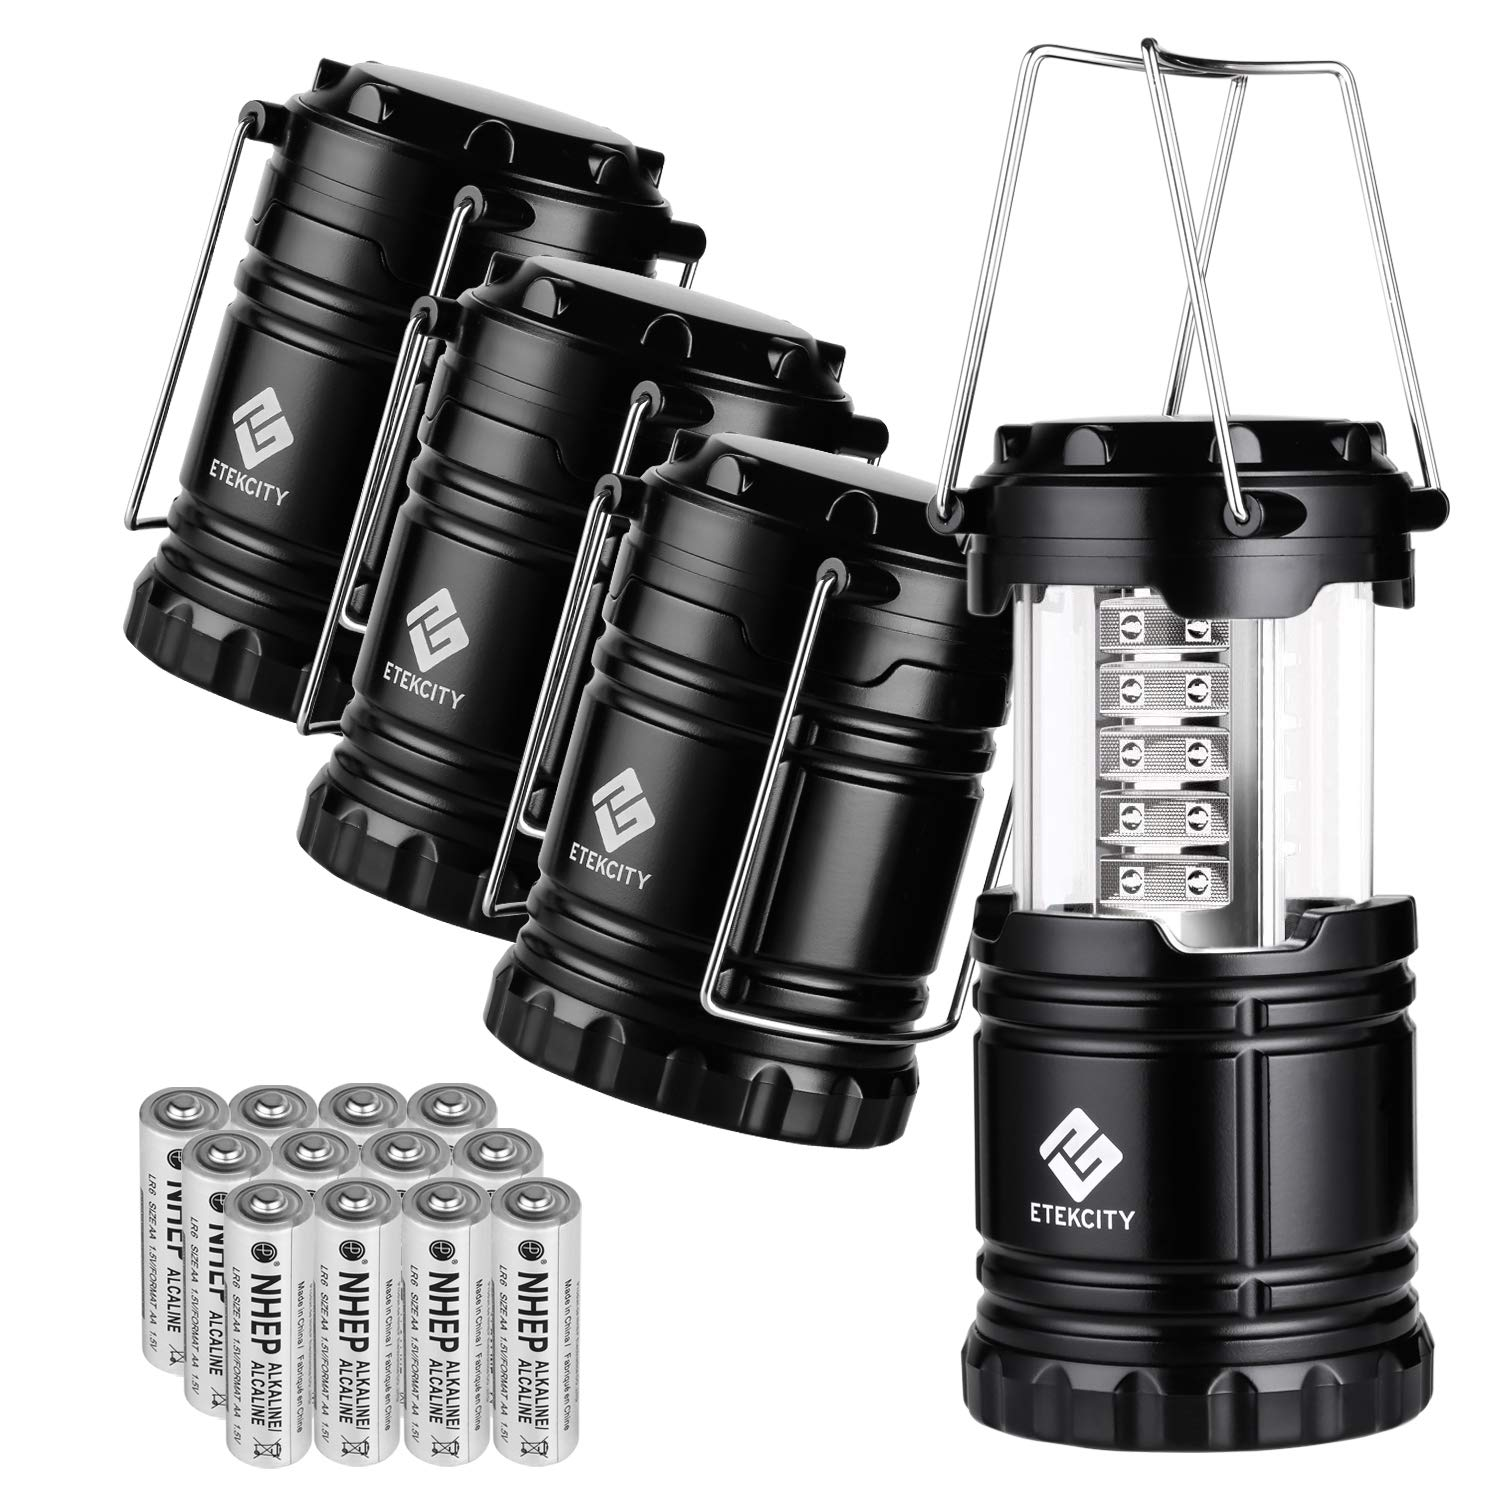 Portable LED Camping Lantern Flashlight